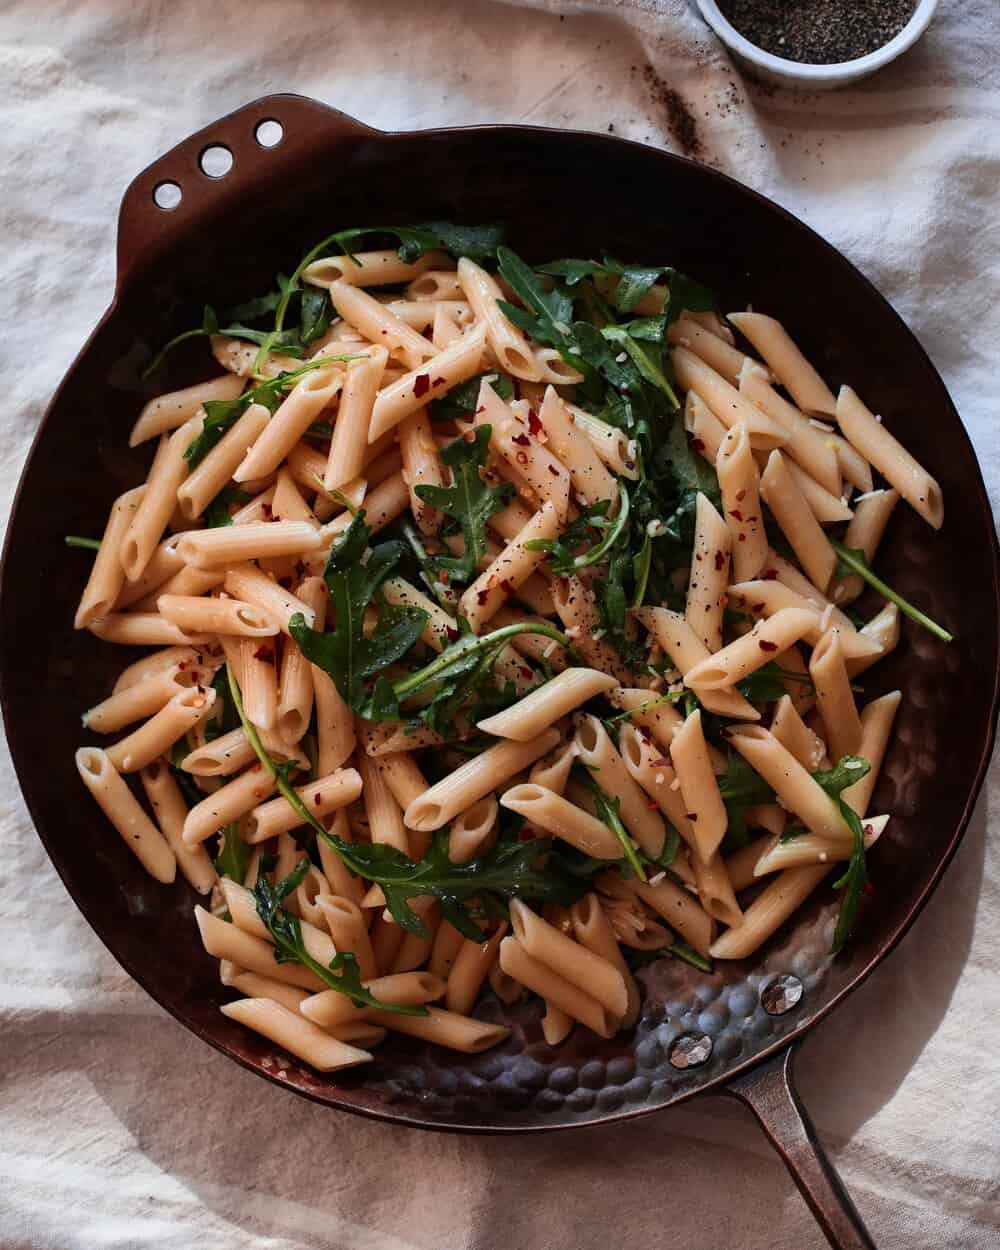 SPICY LEMON ARUGULA PASTA - INGREDIENTS1 16 oz package of penne pasta of choice1/4 cup olive oil6 garlic cloves, mashed1 tsp red chili flakes2-3 cups organic arugula1 lemon, juiced and zested1/2 cup grated parmesan cheese1 tsp sea salt